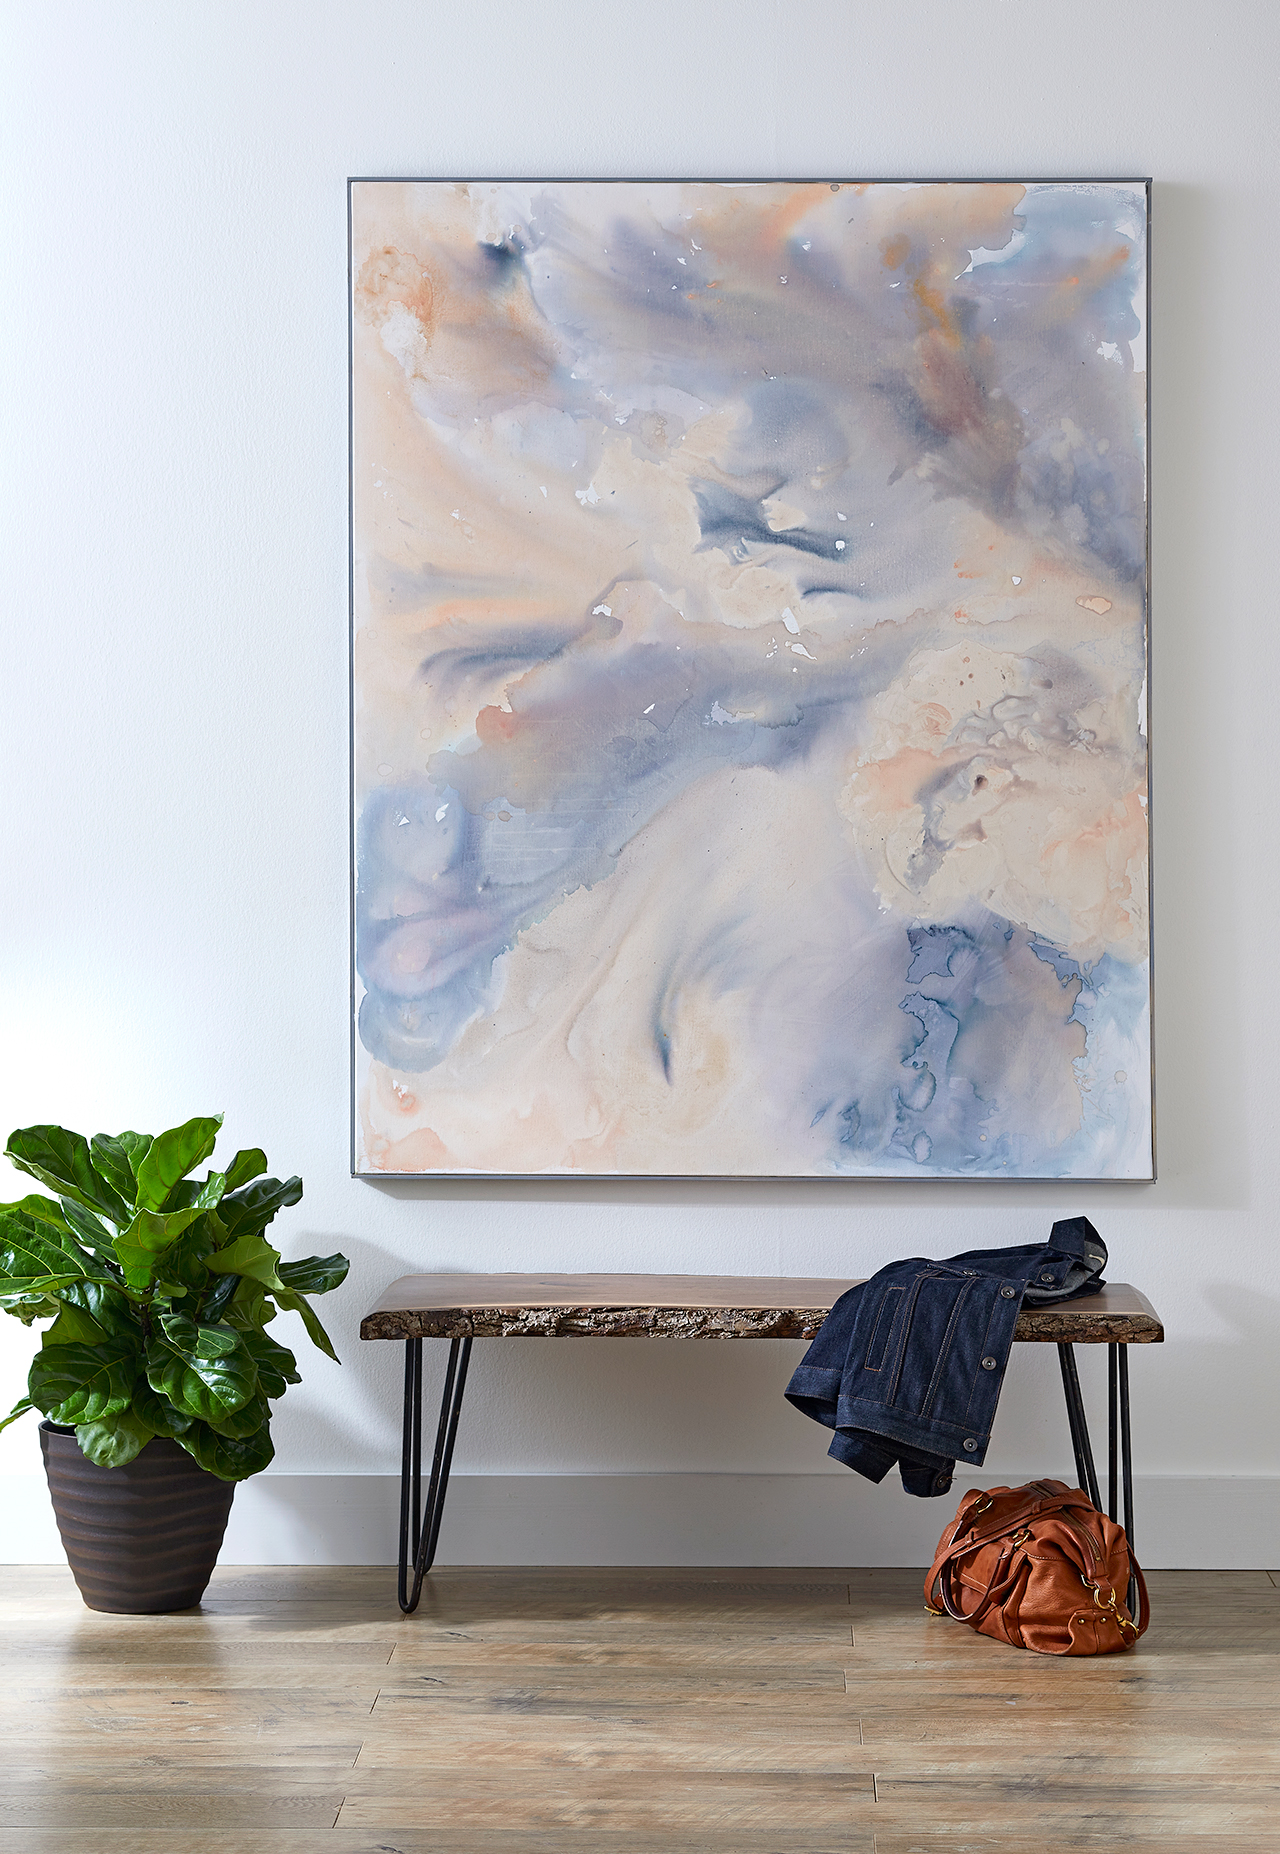 large framed watercolor swirl artwork and bench